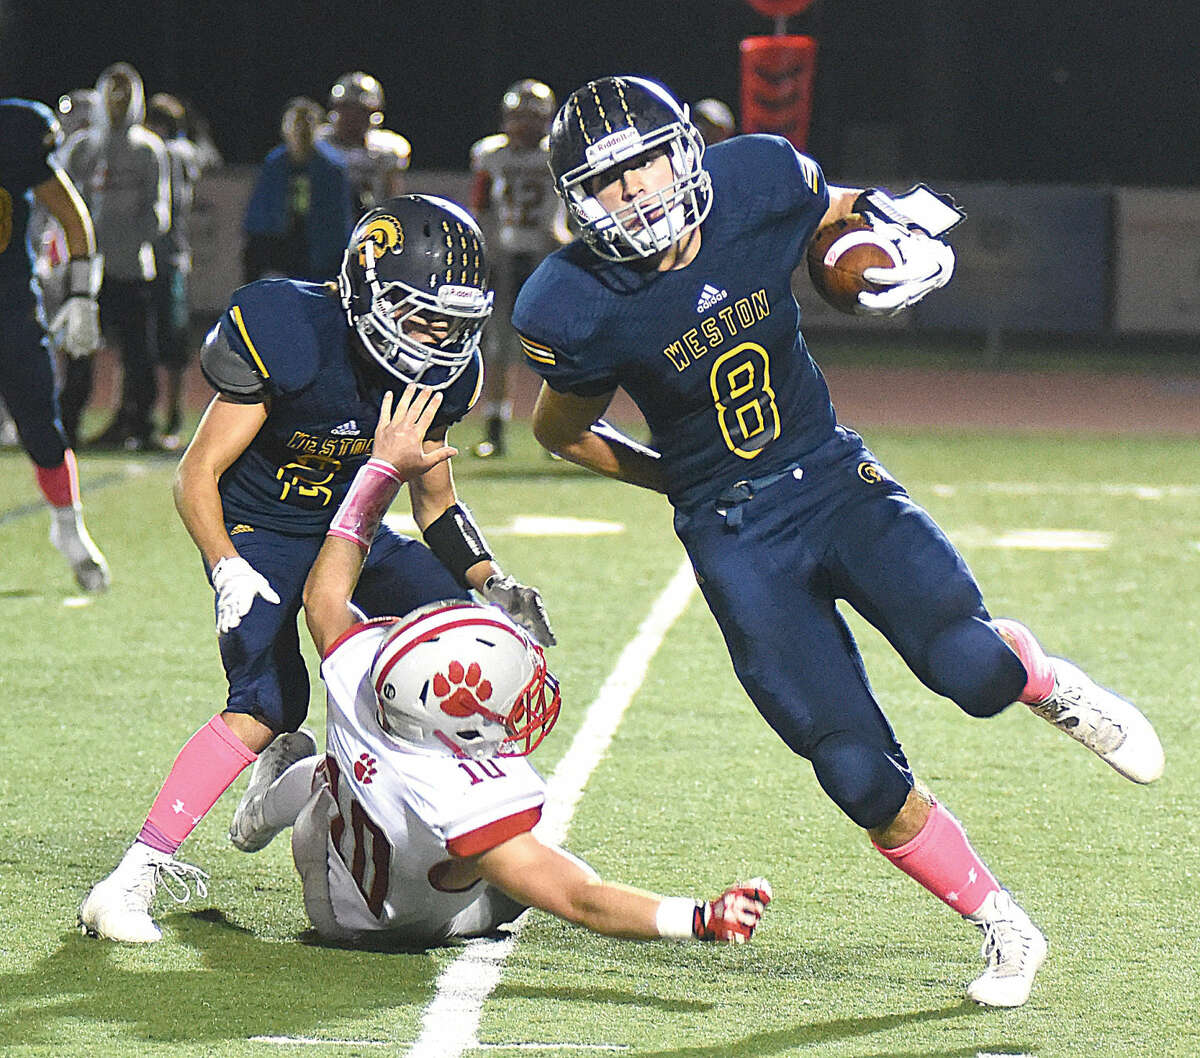 Hour photo/John Nash Weston's Jason Lawrence (8)avoids the tackle of Pomperaug's Austin Post during Friday night's game in Weston.